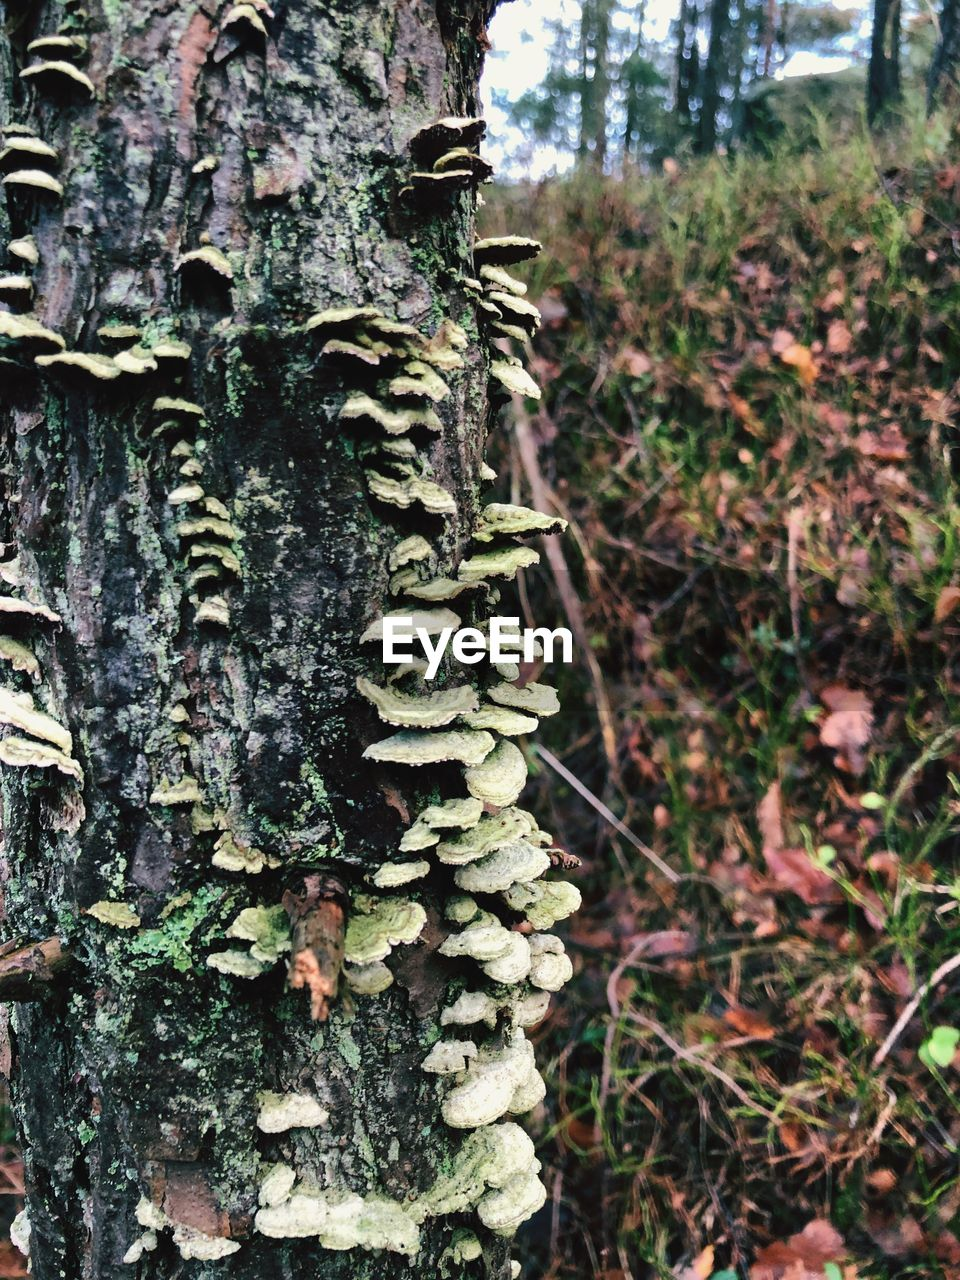 plant, tree, trunk, growth, tree trunk, day, nature, focus on foreground, no people, land, close-up, outdoors, tranquility, beauty in nature, forest, moss, green color, textured, rough, natural pattern, lichen, bark, carving